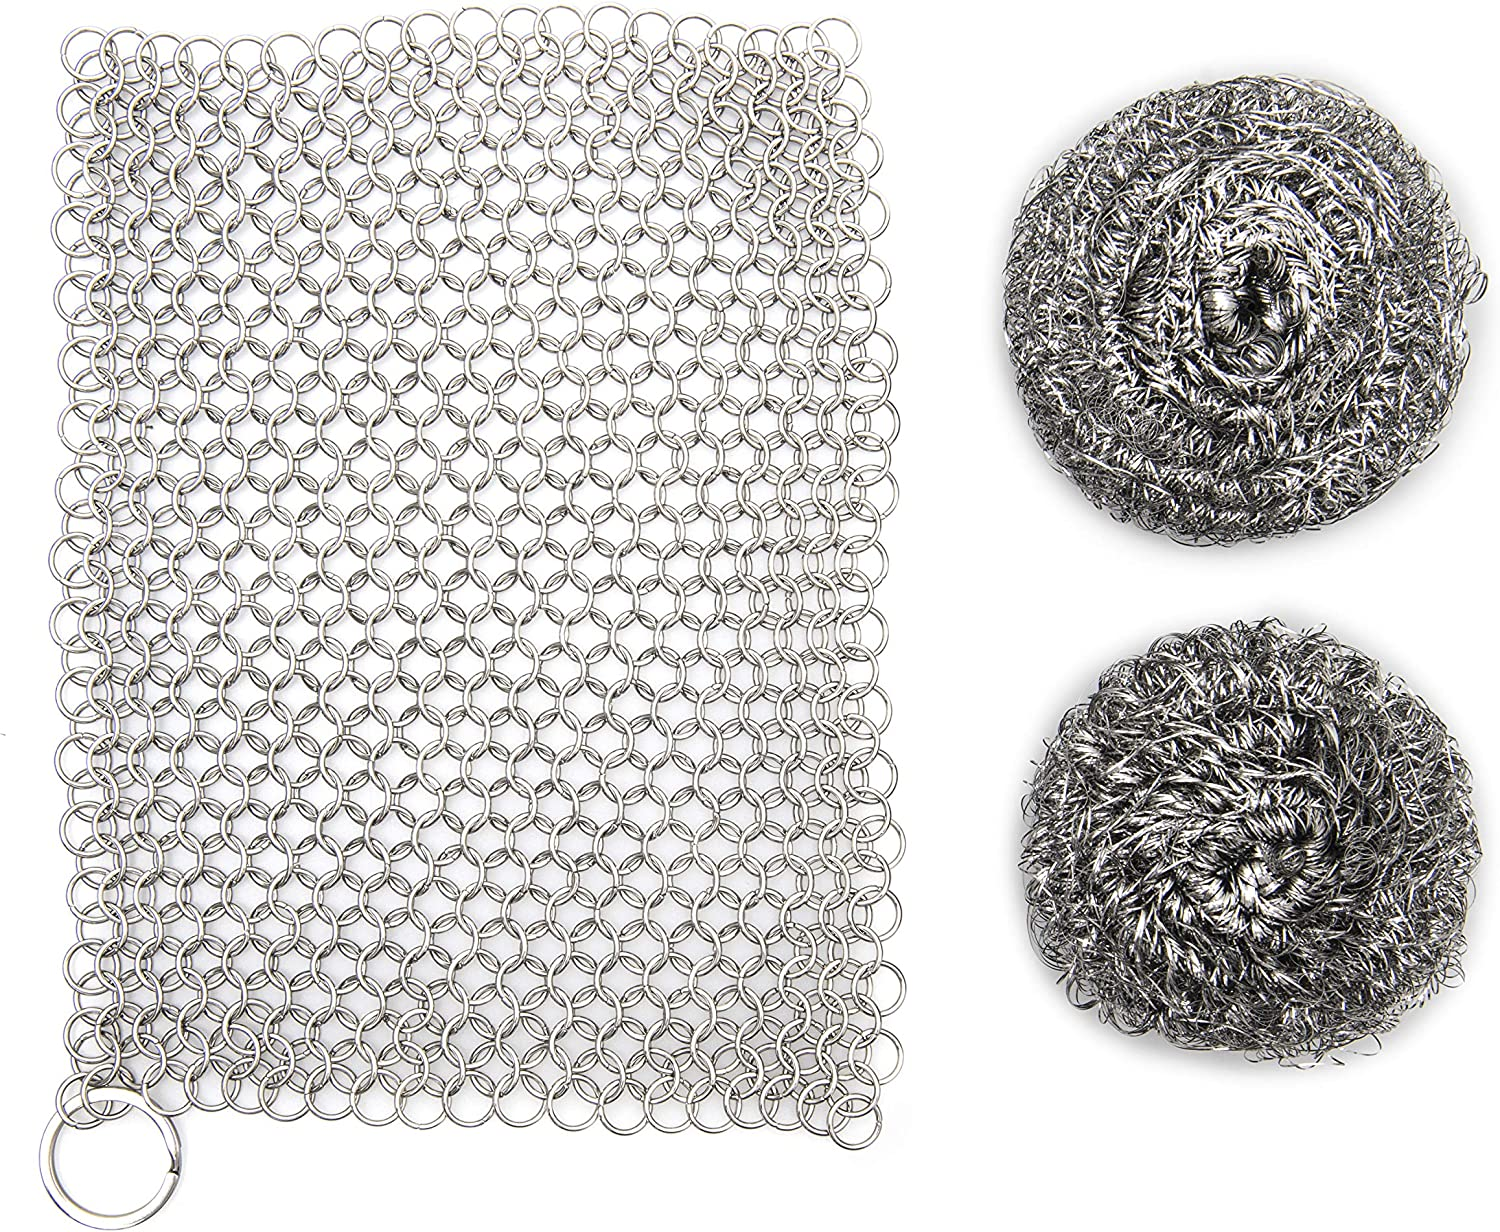 """SILVERIO Cast Iron Skillet Cleaner - Heavy Duty Stainless Steel 7"""" x 7"""" Chainmail Scrubber - Cleans Pre-Seasoned Pots, Pans, Dutch Ovens, Griddles - Complete with 2 Scouring Sponges: Health & Personal Care"""